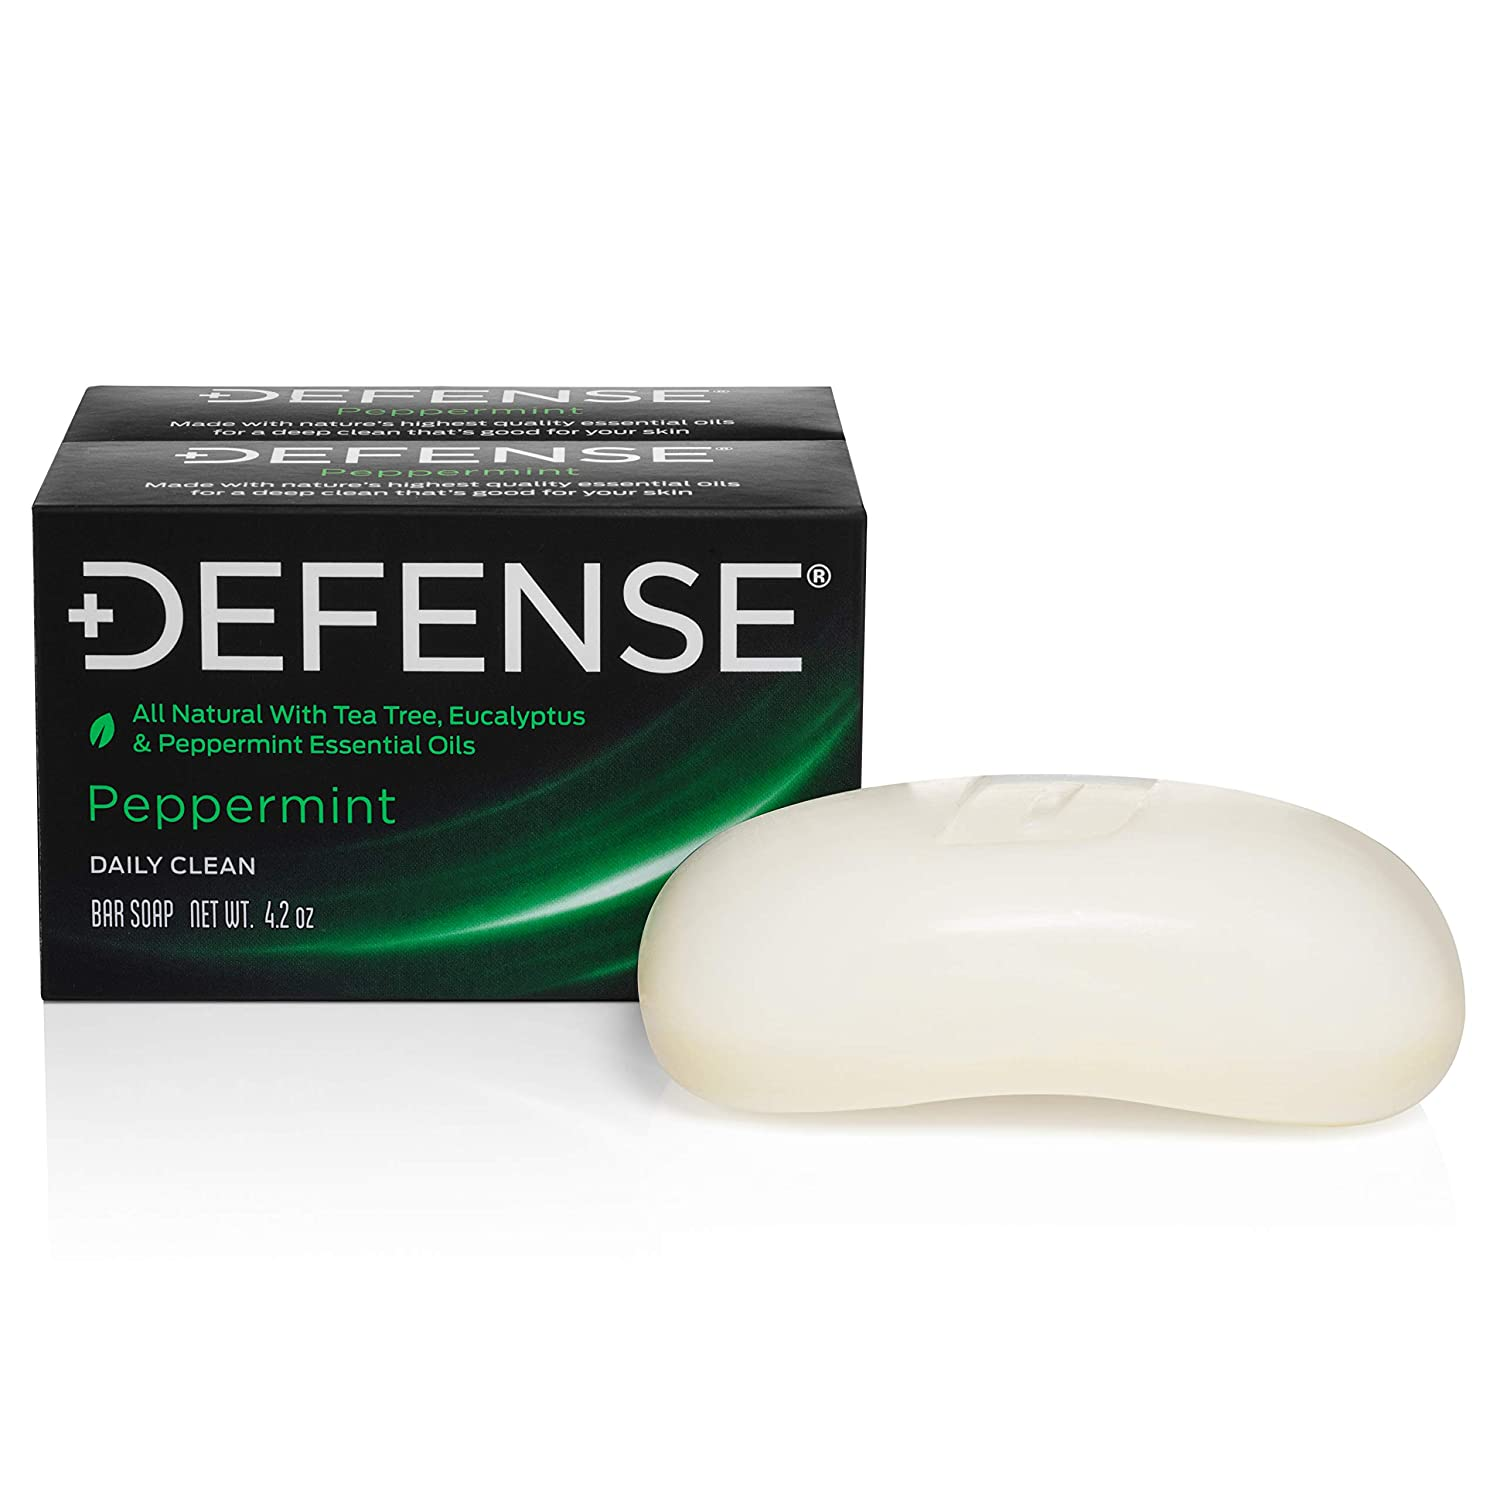 Defense Soap, Peppermint, 4 Ounce Bar (Pack of 2) - 100% Natural and Herbal Pharmaceutical Grade Tea Tree Oil